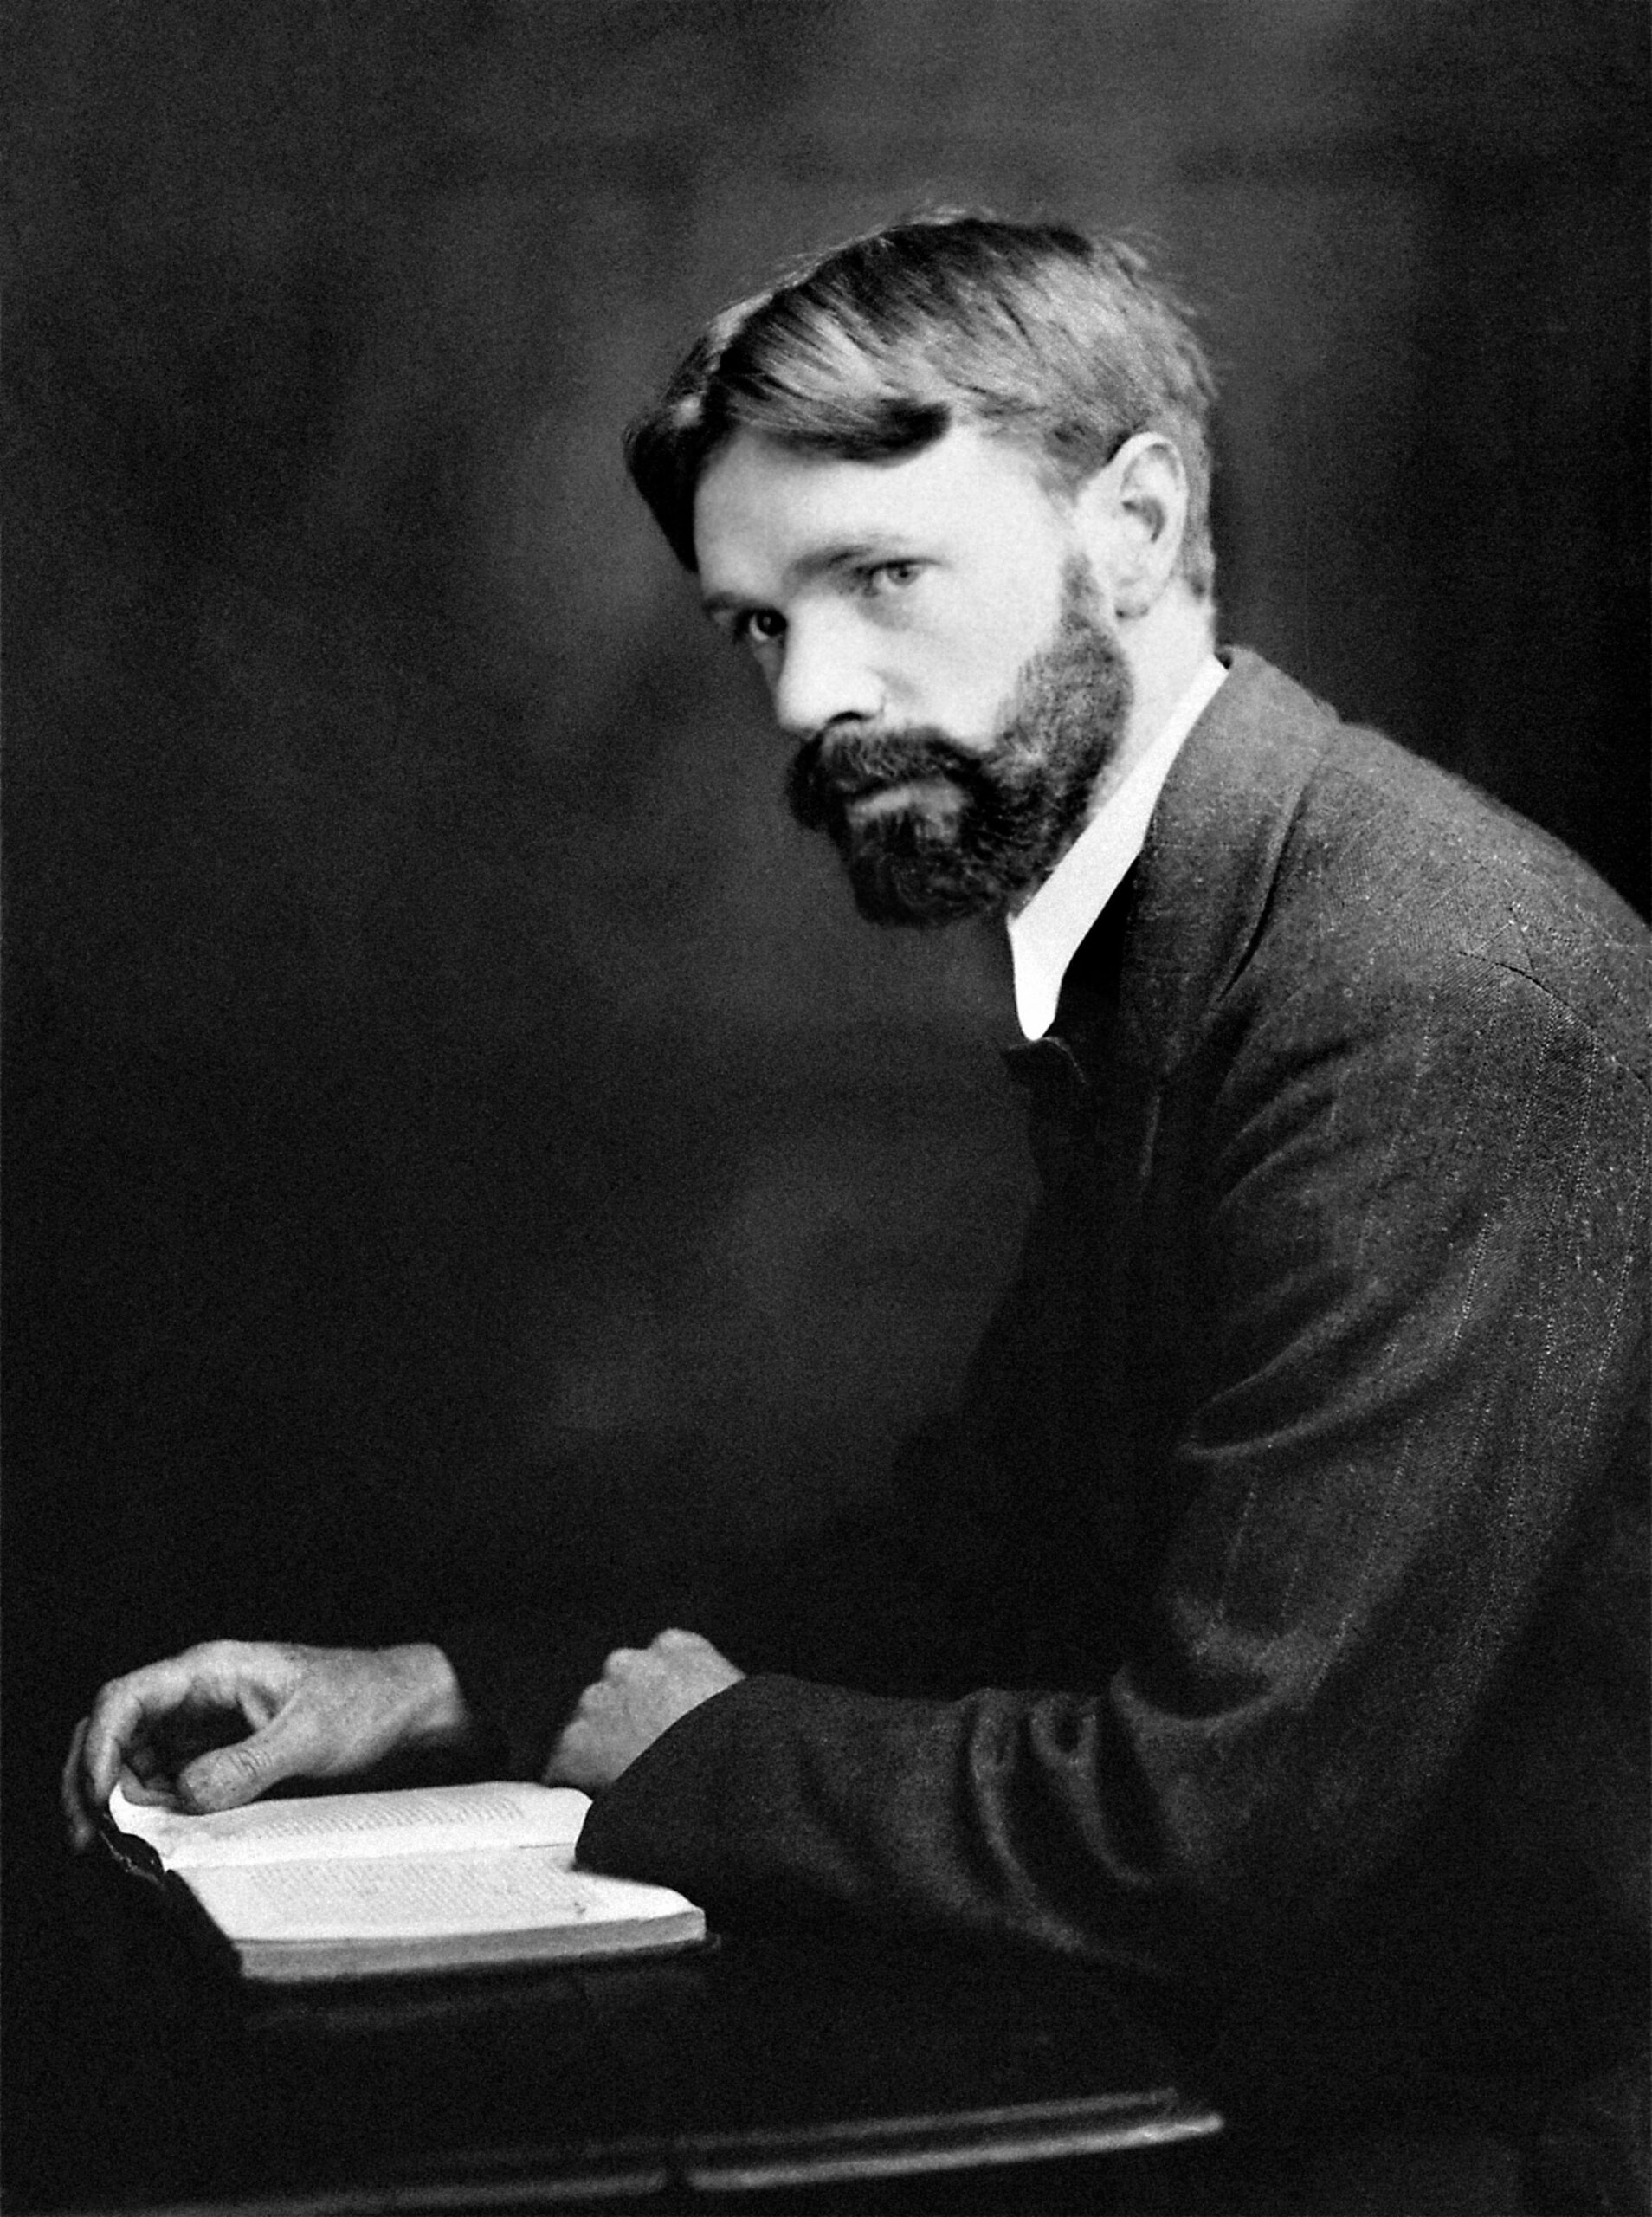 wilson d h lawrence scaled - Poesia Online